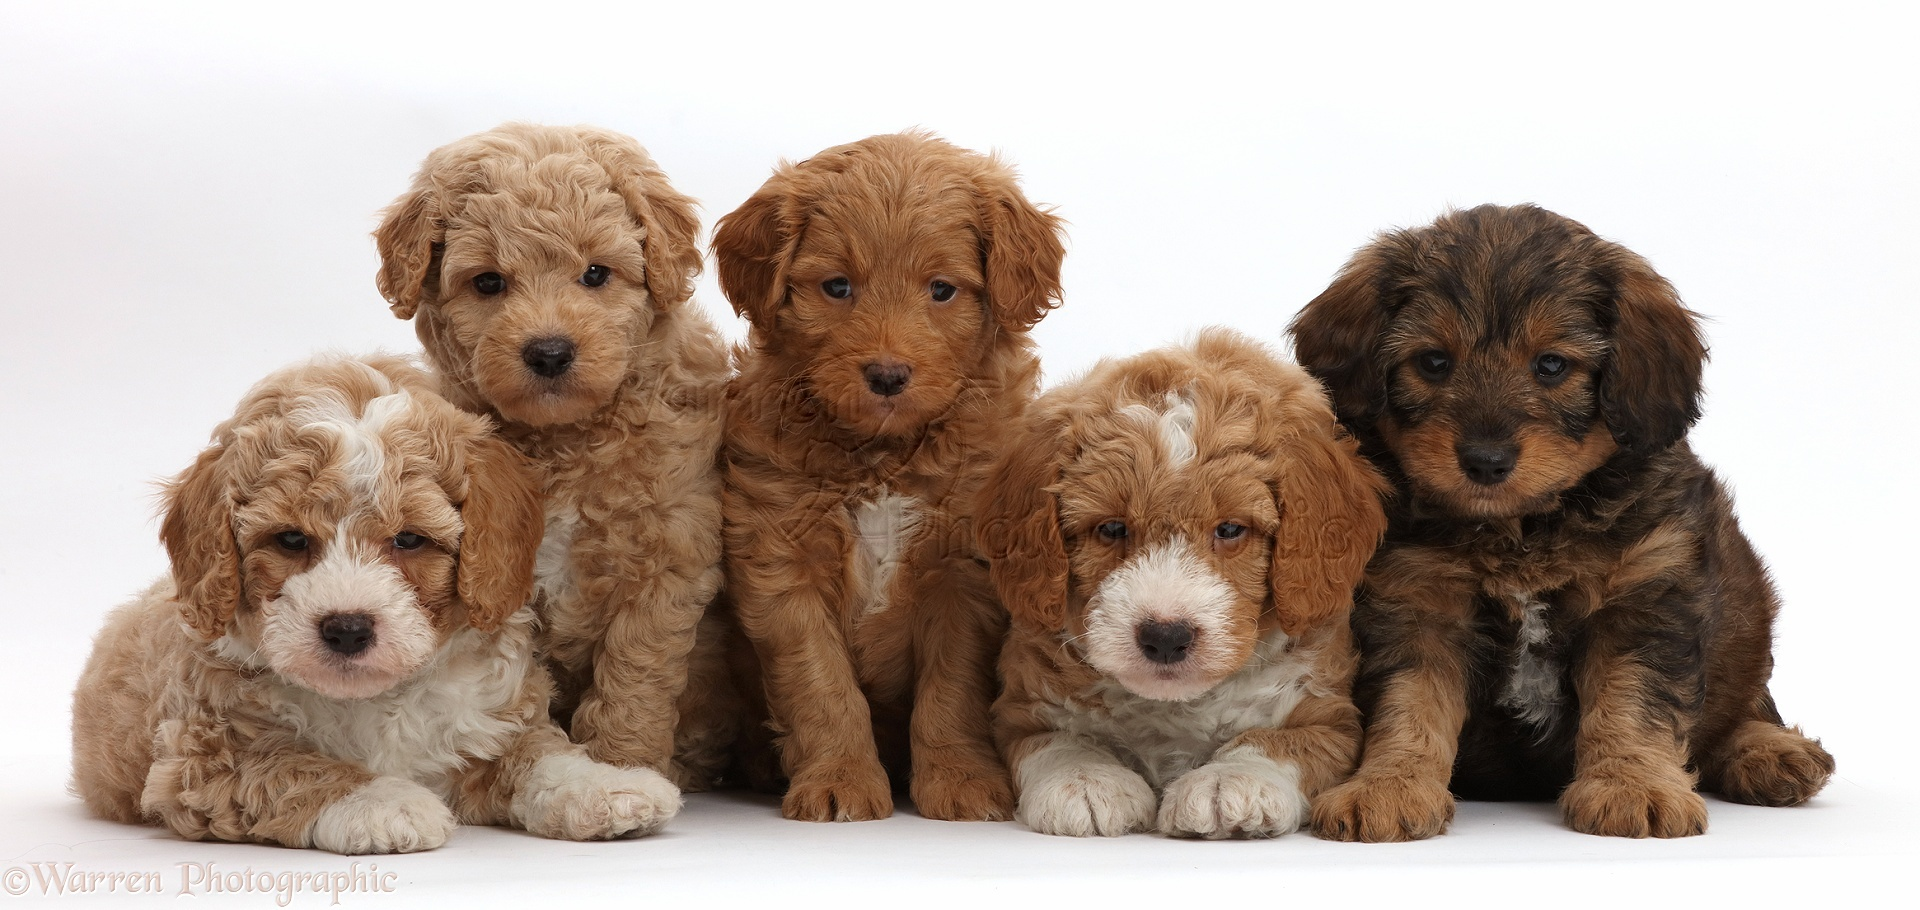 Dogs: Five F1b Toy Goldendoodle puppies, 7 weeks old photo